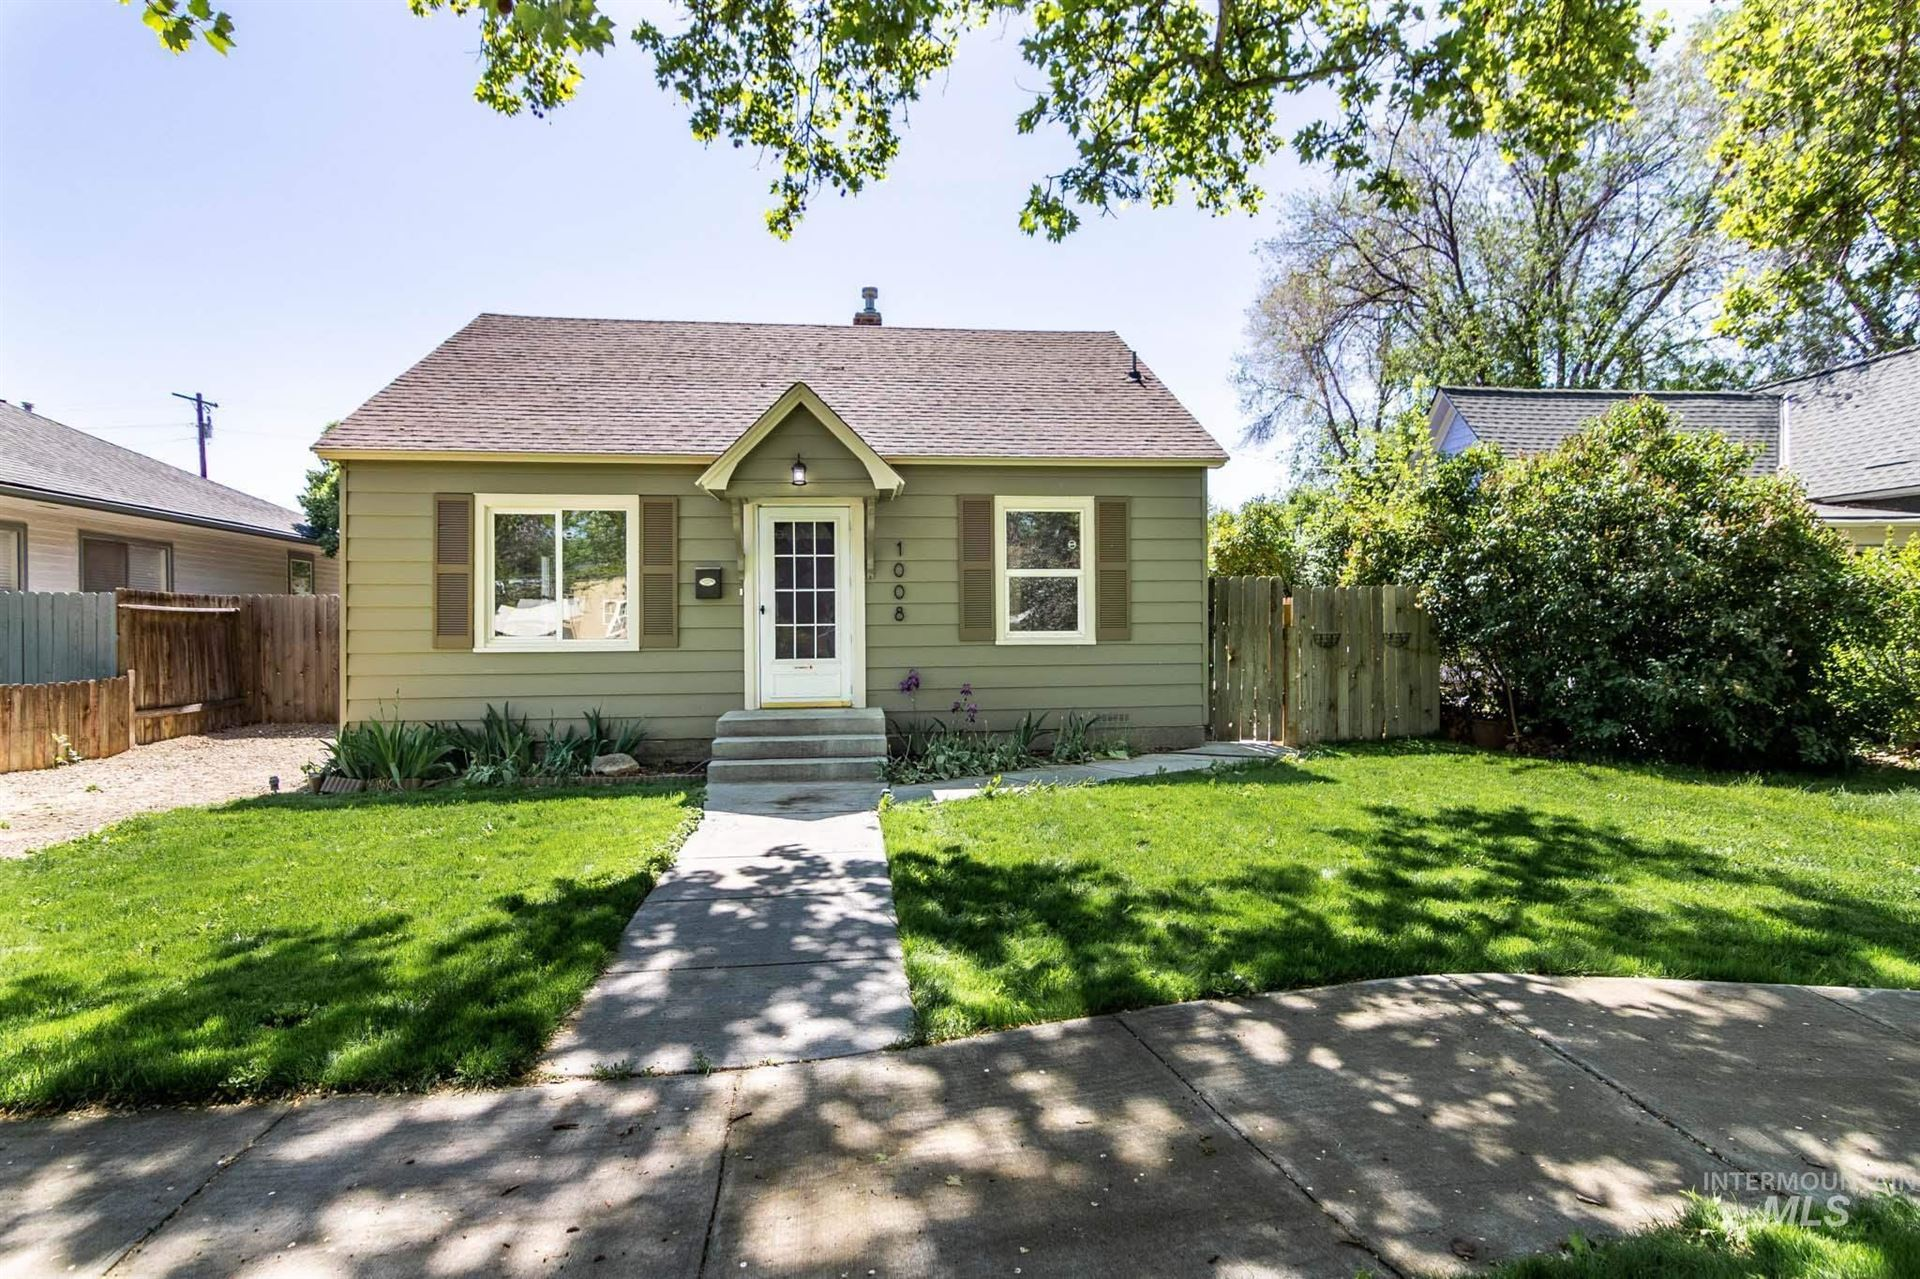 Photo of 1008 11th Ave. S., Nampa, ID 83651 (MLS # 98803239)